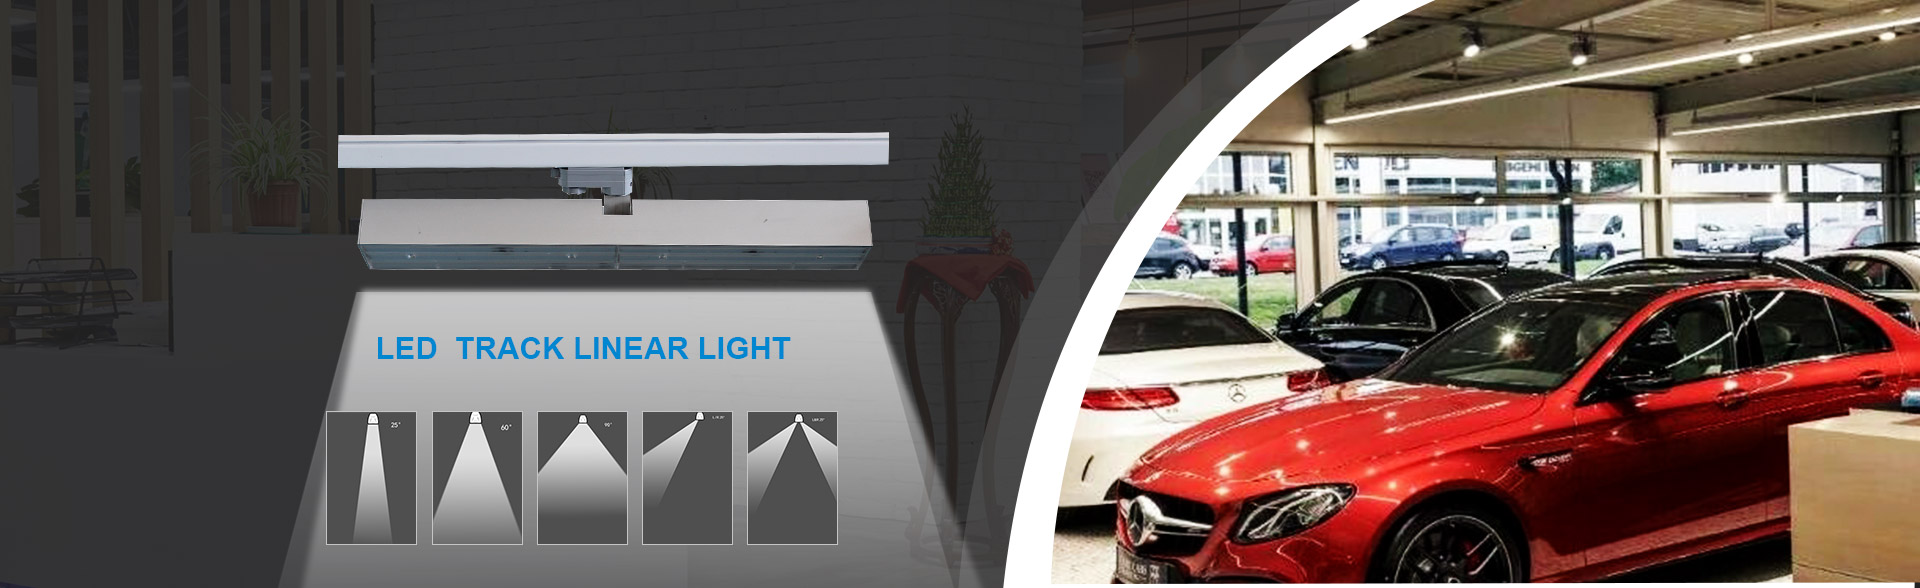 led track linear light